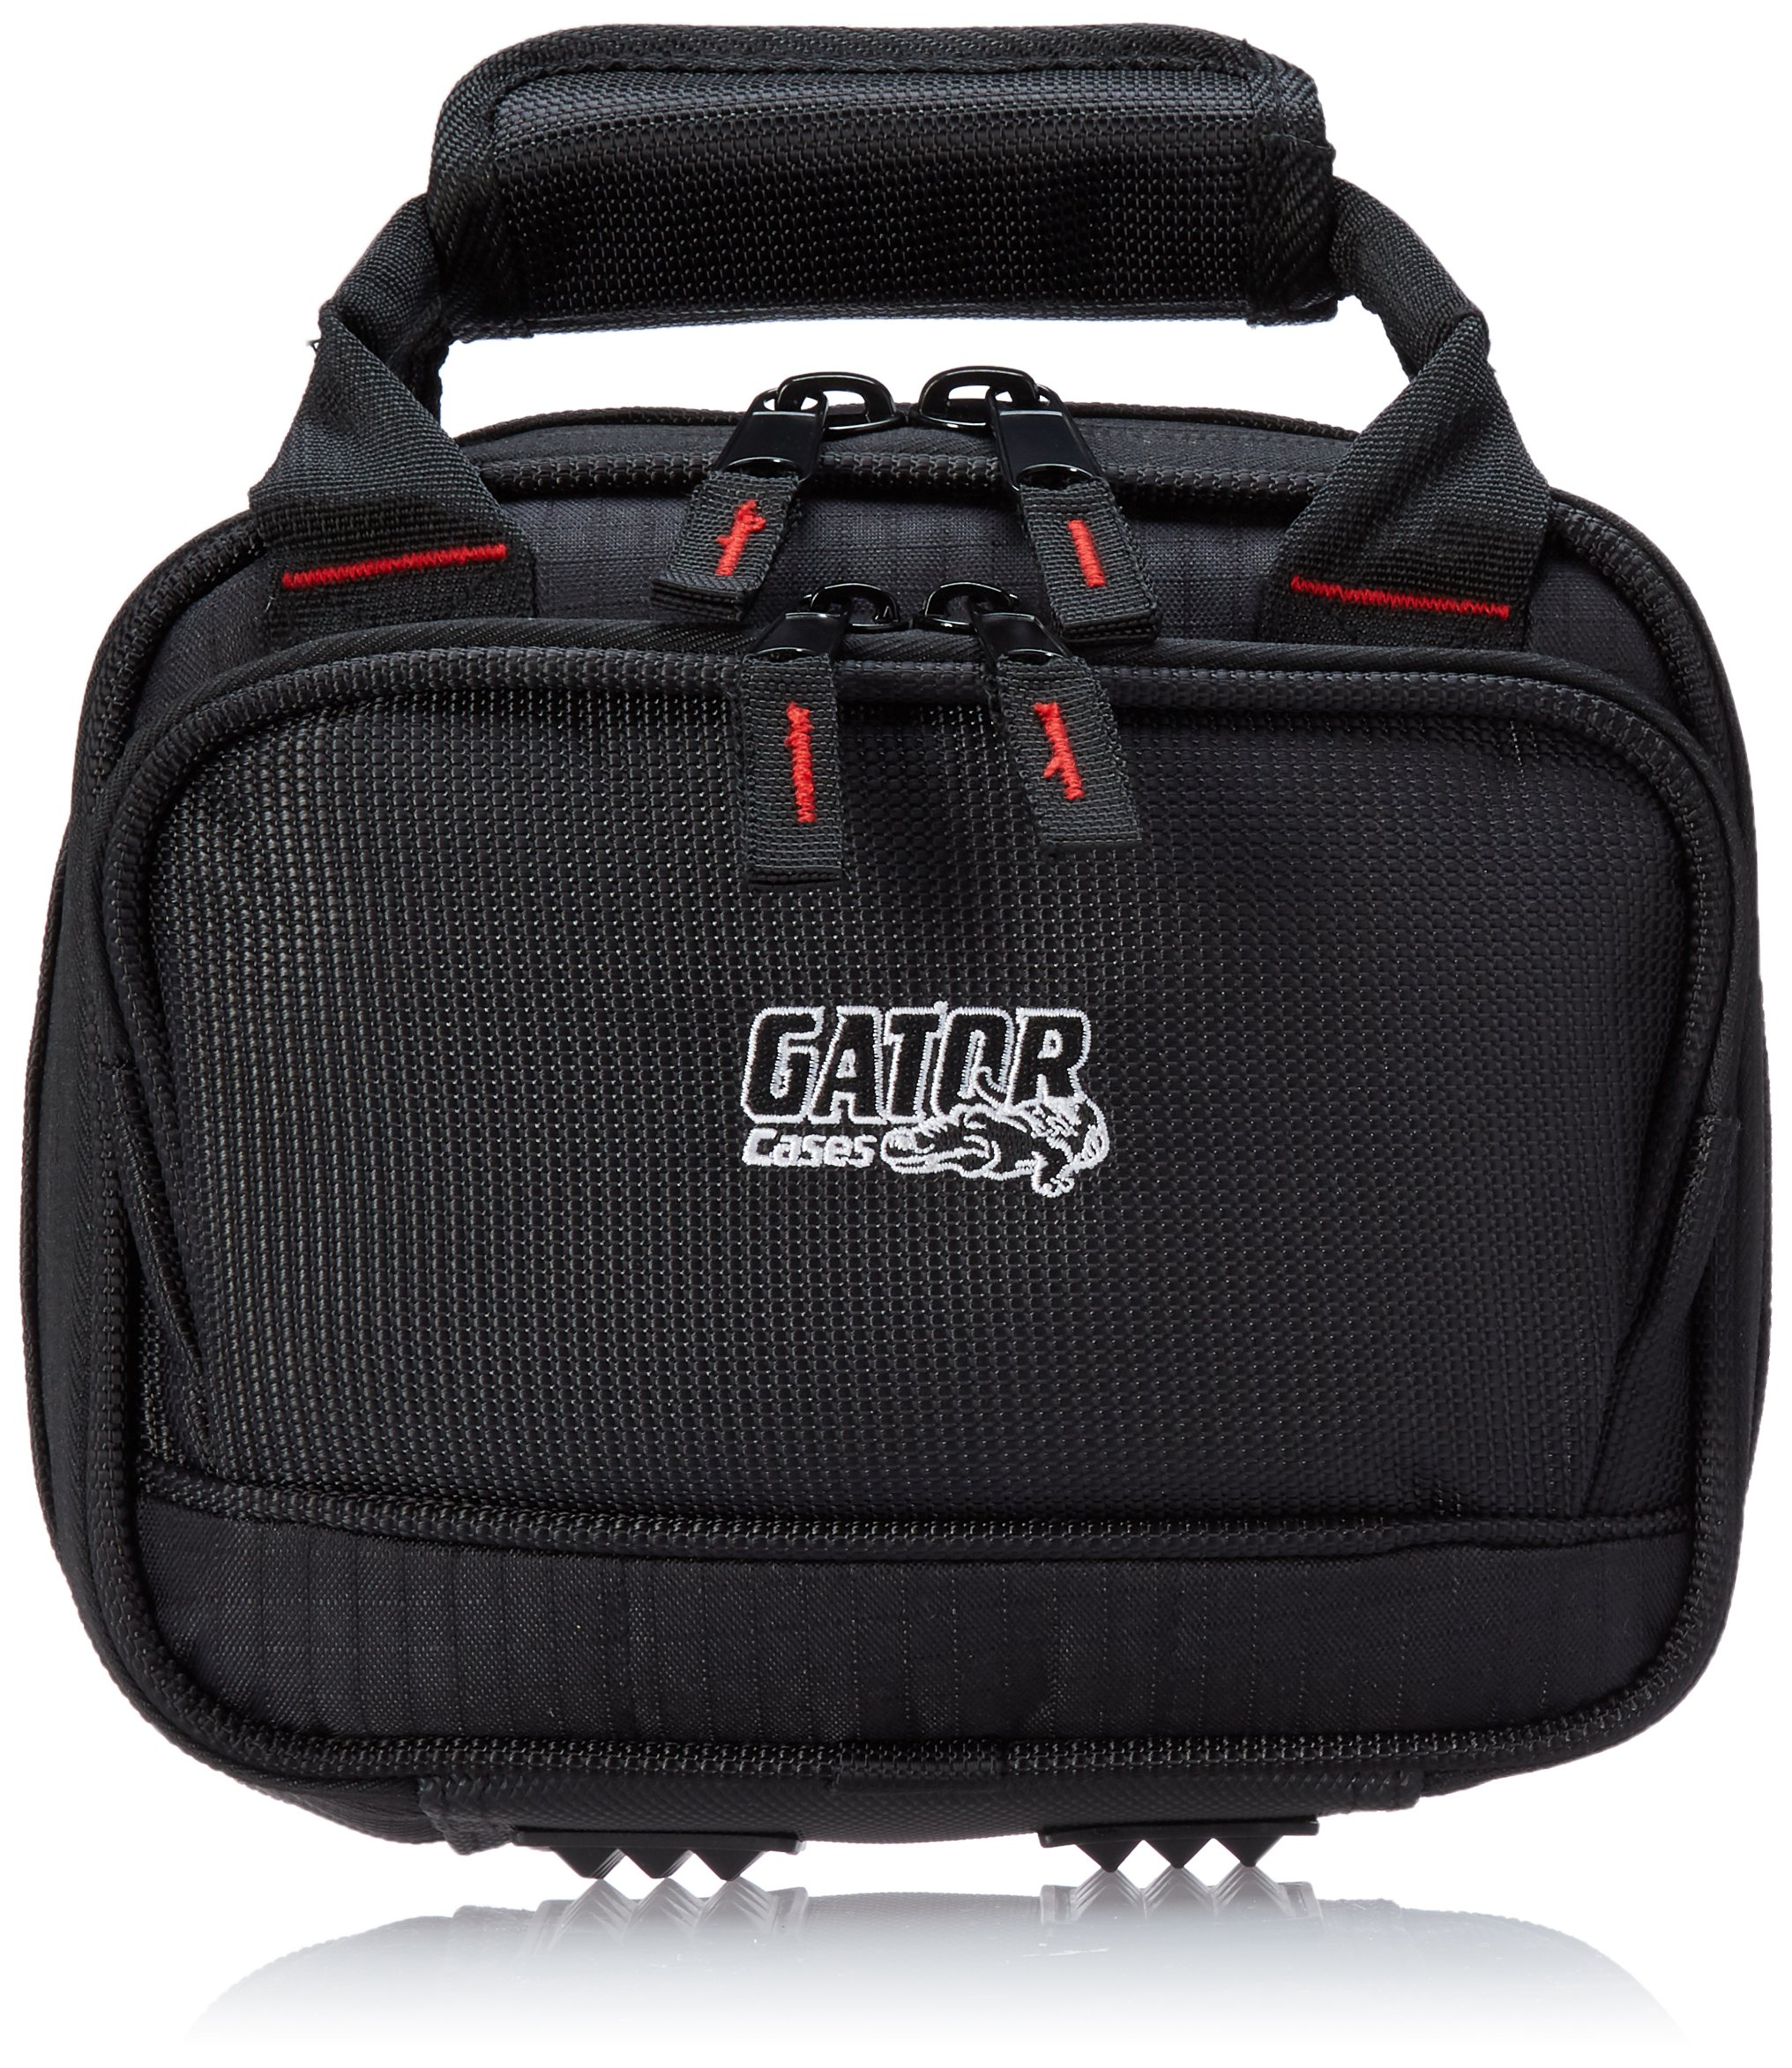 Gator Cases Padded Nylon Mixer/Gear Carry Bag with Removable Strap; 8.25'' x 6.25'' x 2.75'' (G-MIXERBAG-0608) by Gator